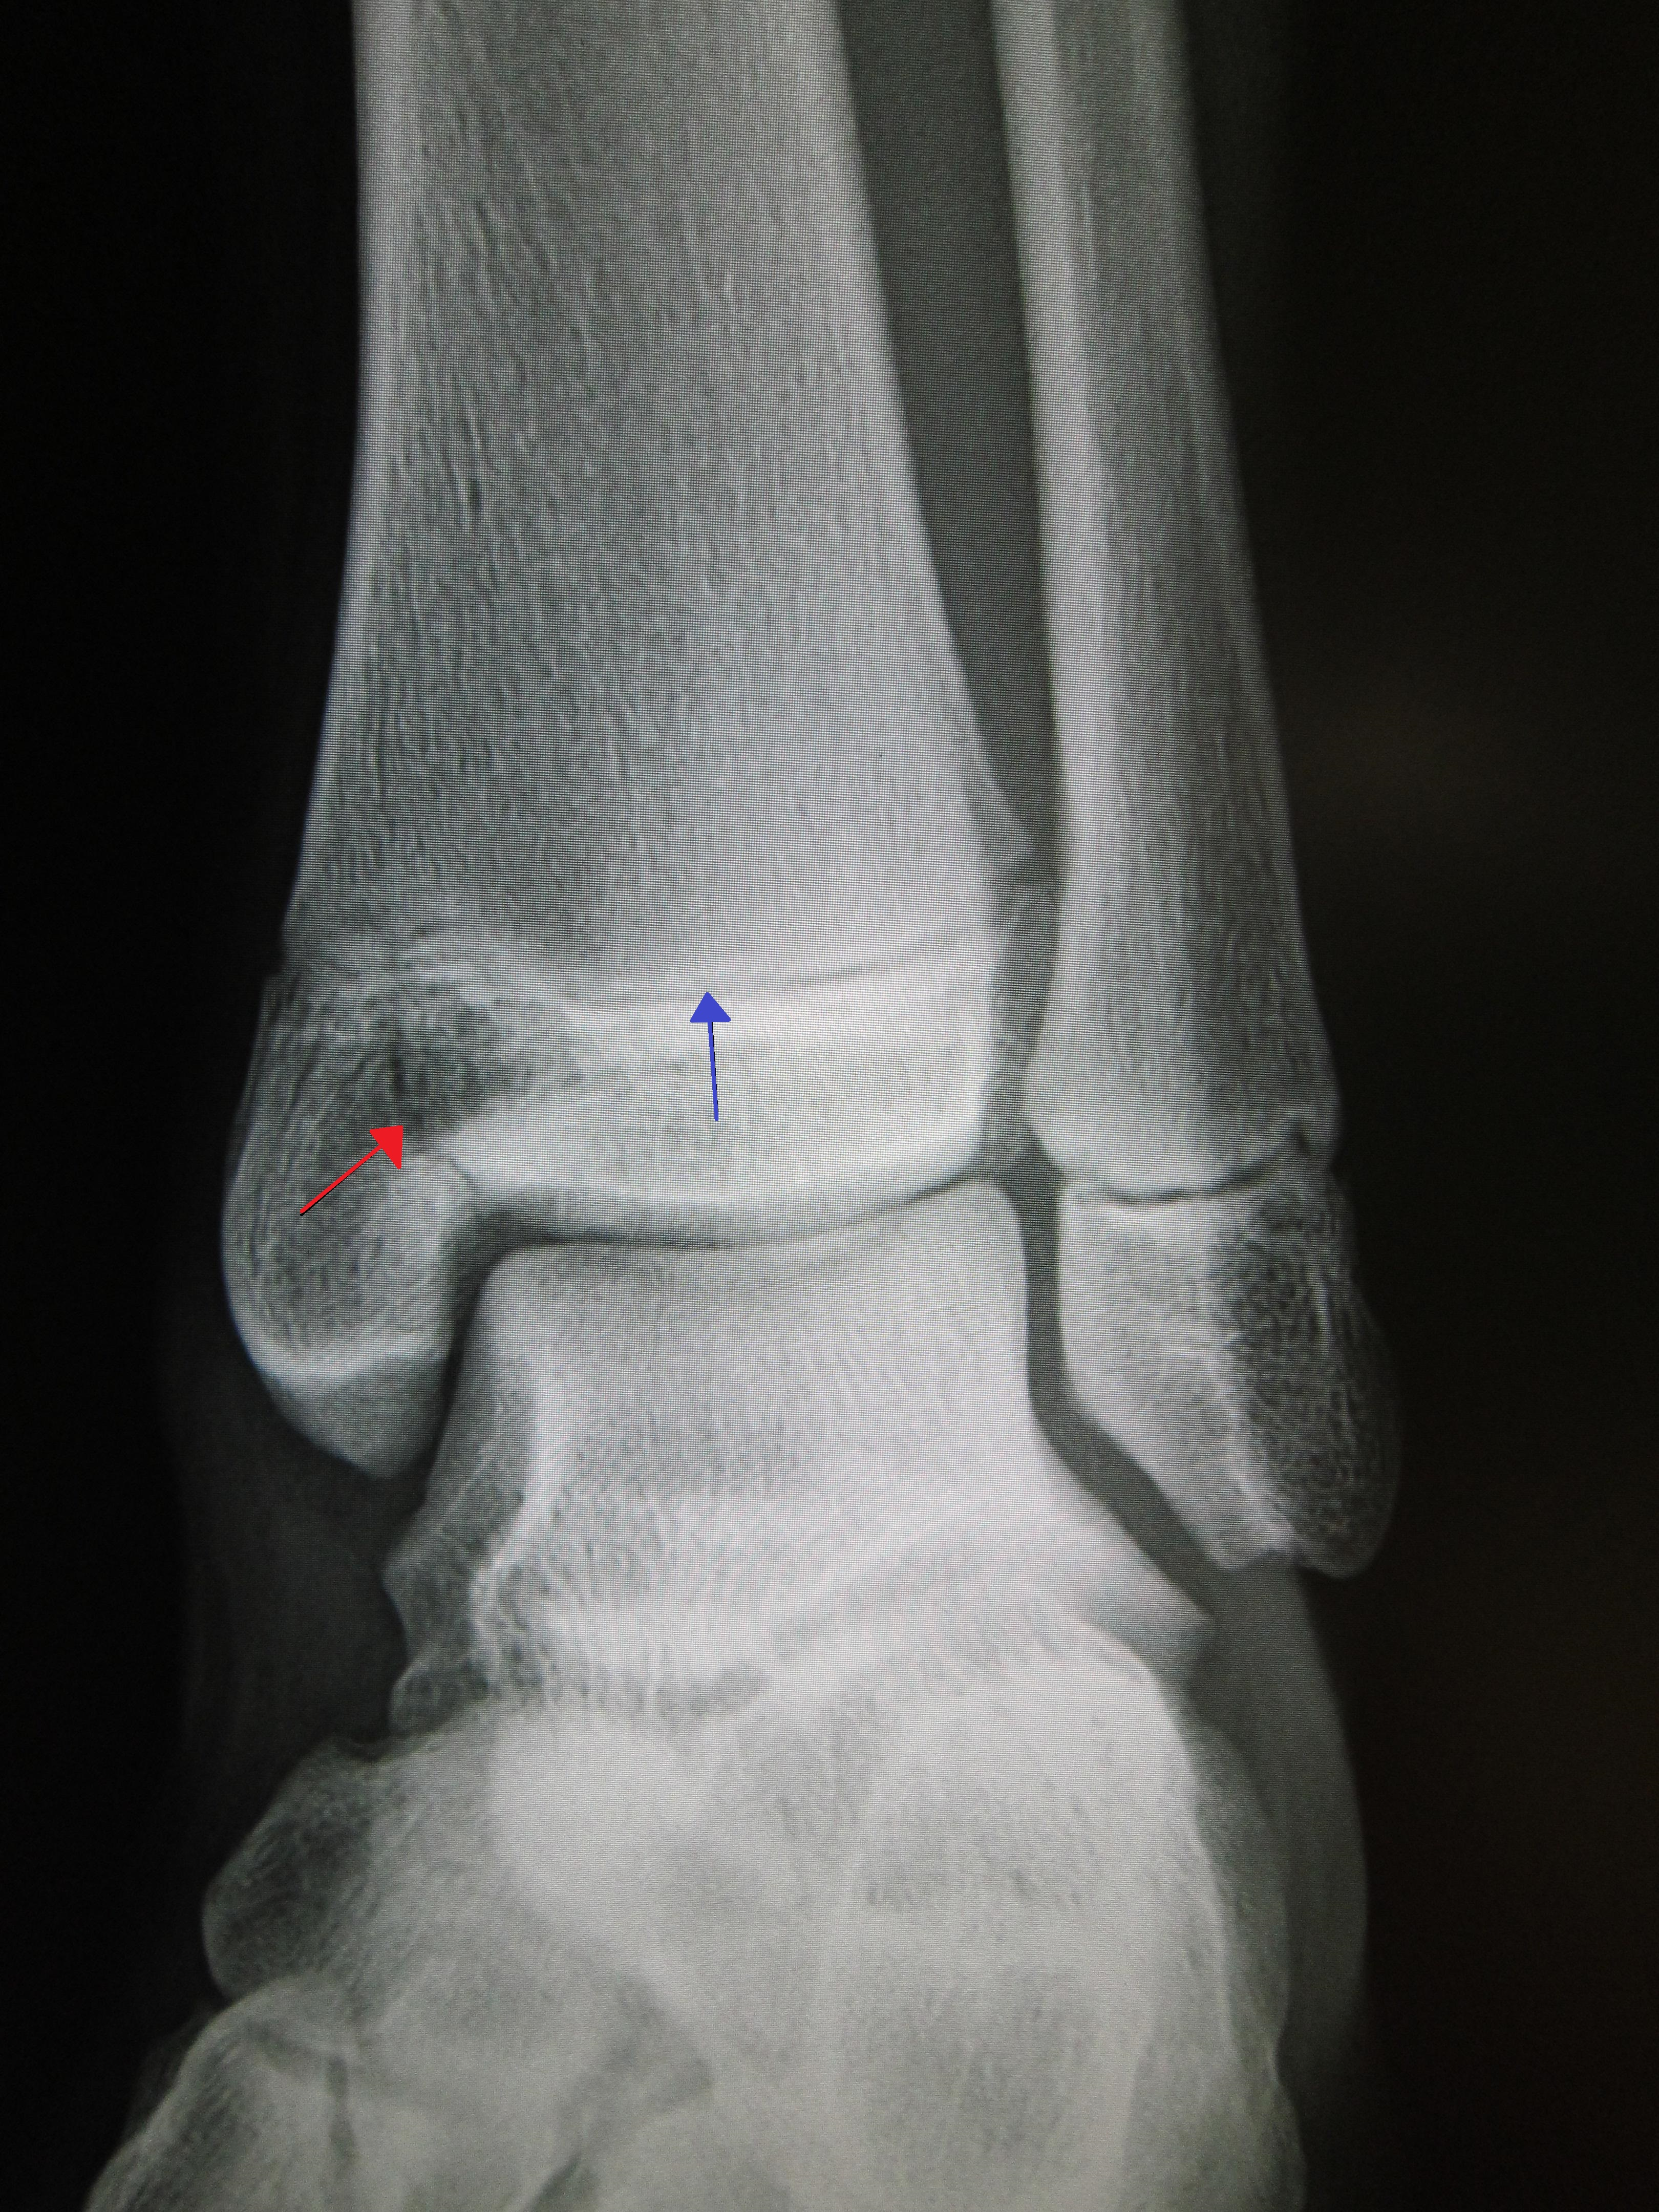 ankle fracture treatment san francisco